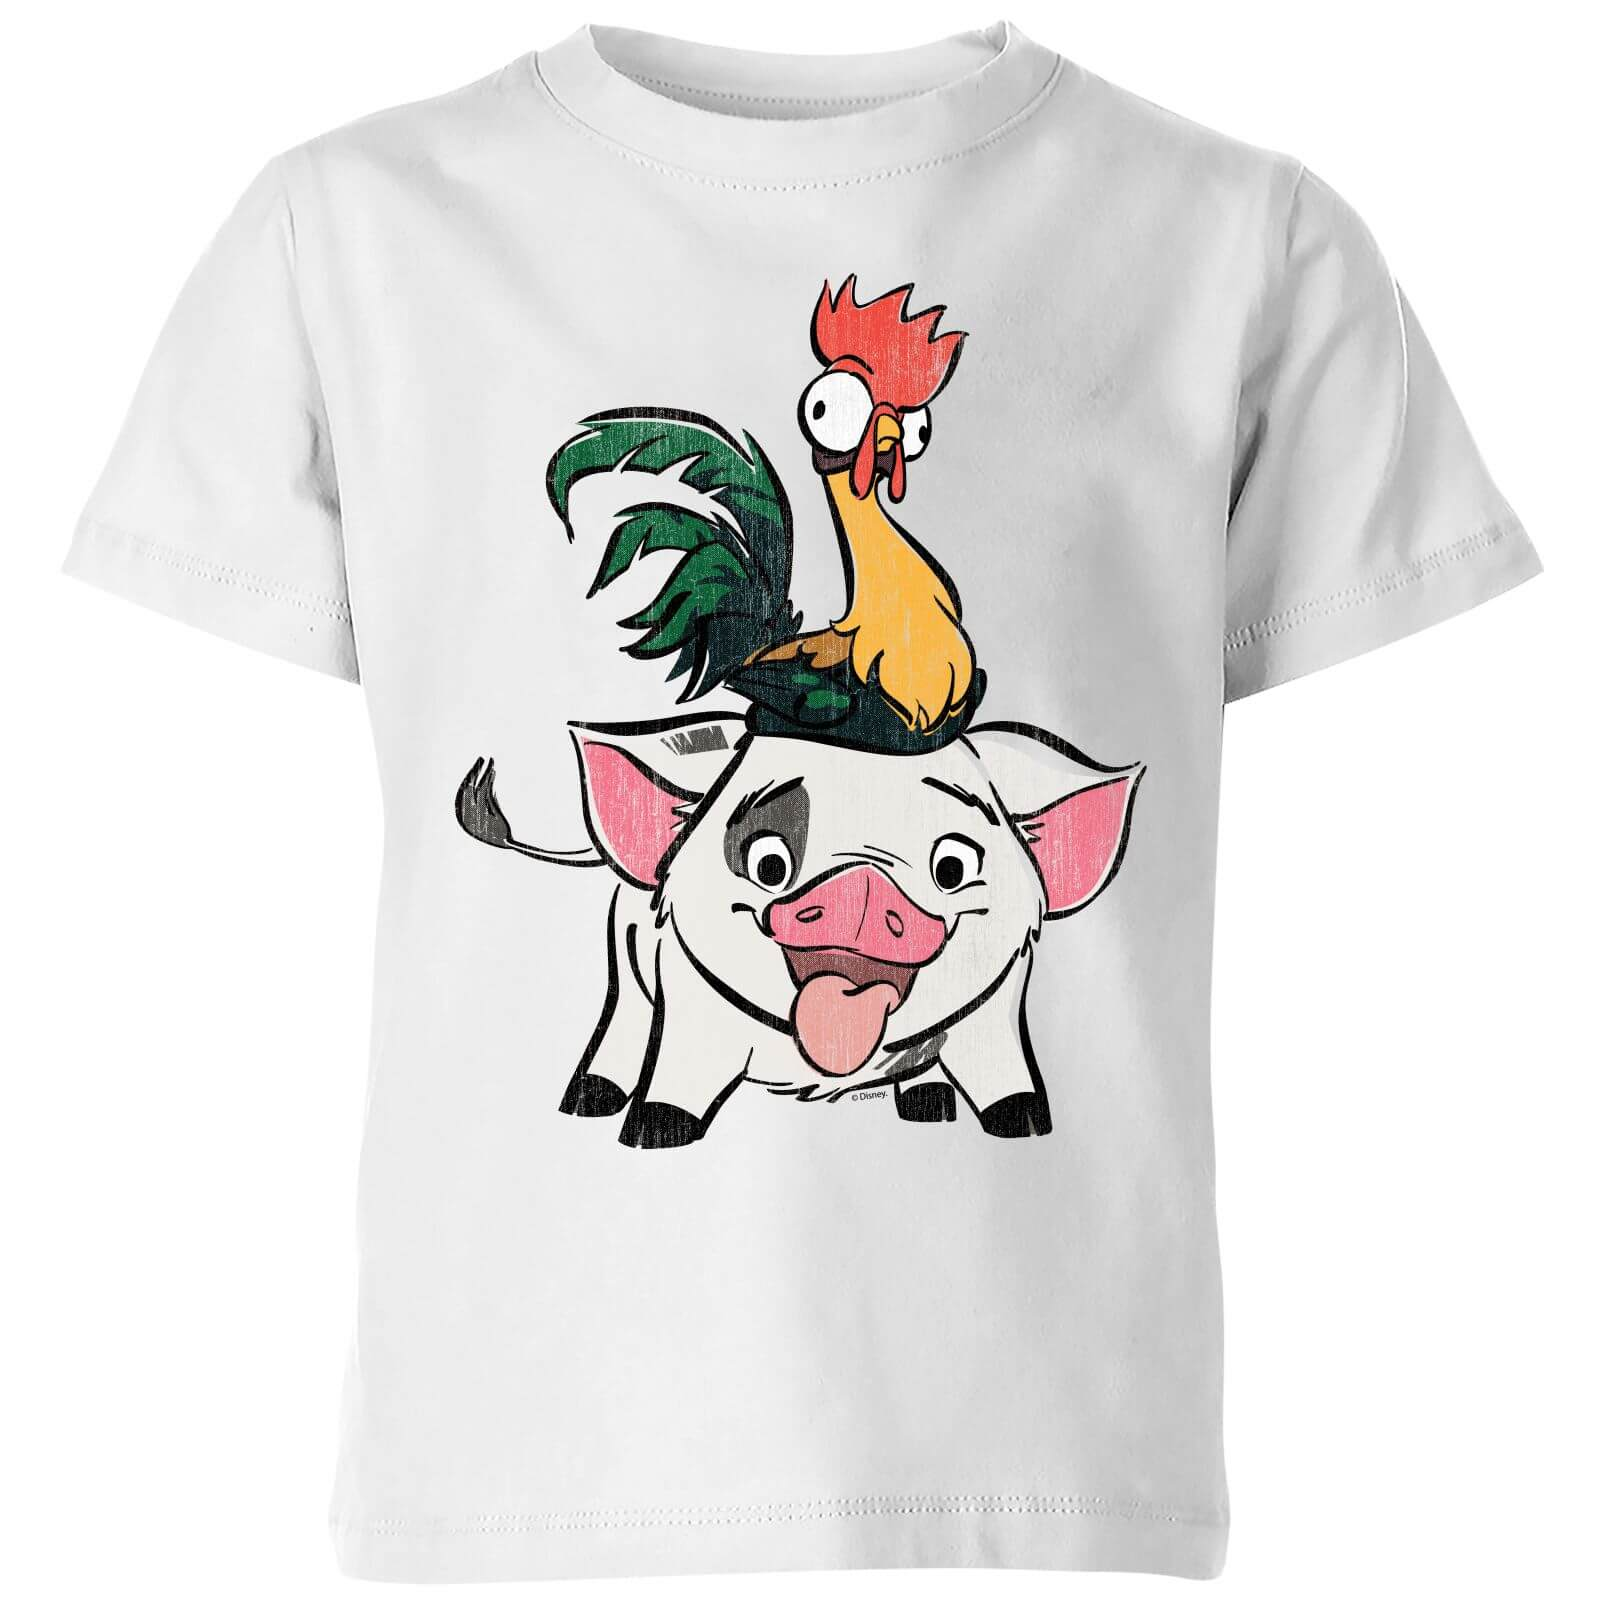 b589ab219 Moana Hei Hei and Pua Kids' T-Shirt - White Clothing | Zavvi